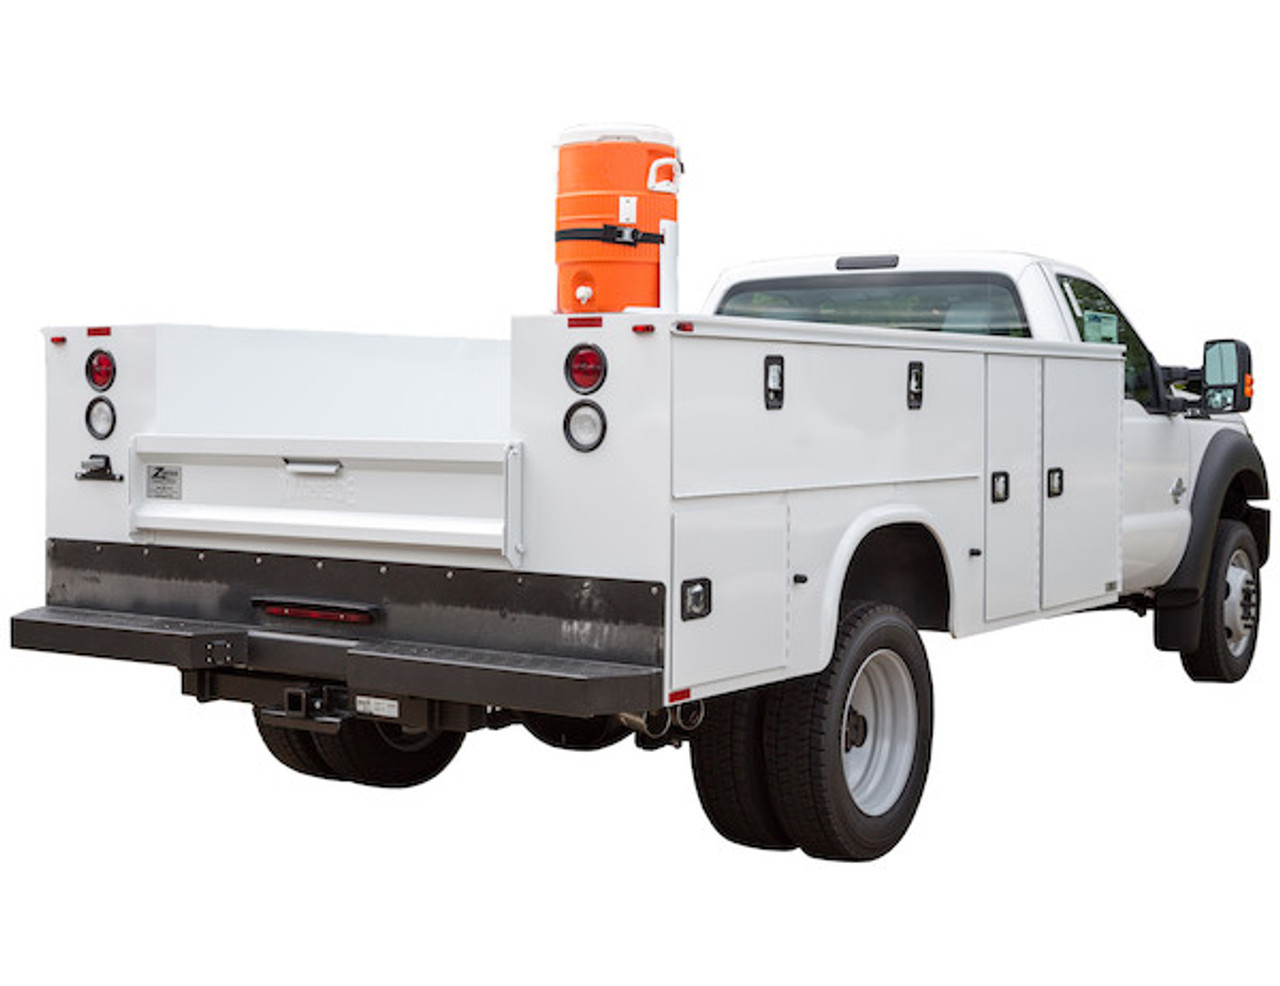 Buyers 5201005 White Steel 5 Gallon Water Cooler Mount for Landscaping Trailers, Garages, Sheds, Work Trucks Picture # 2